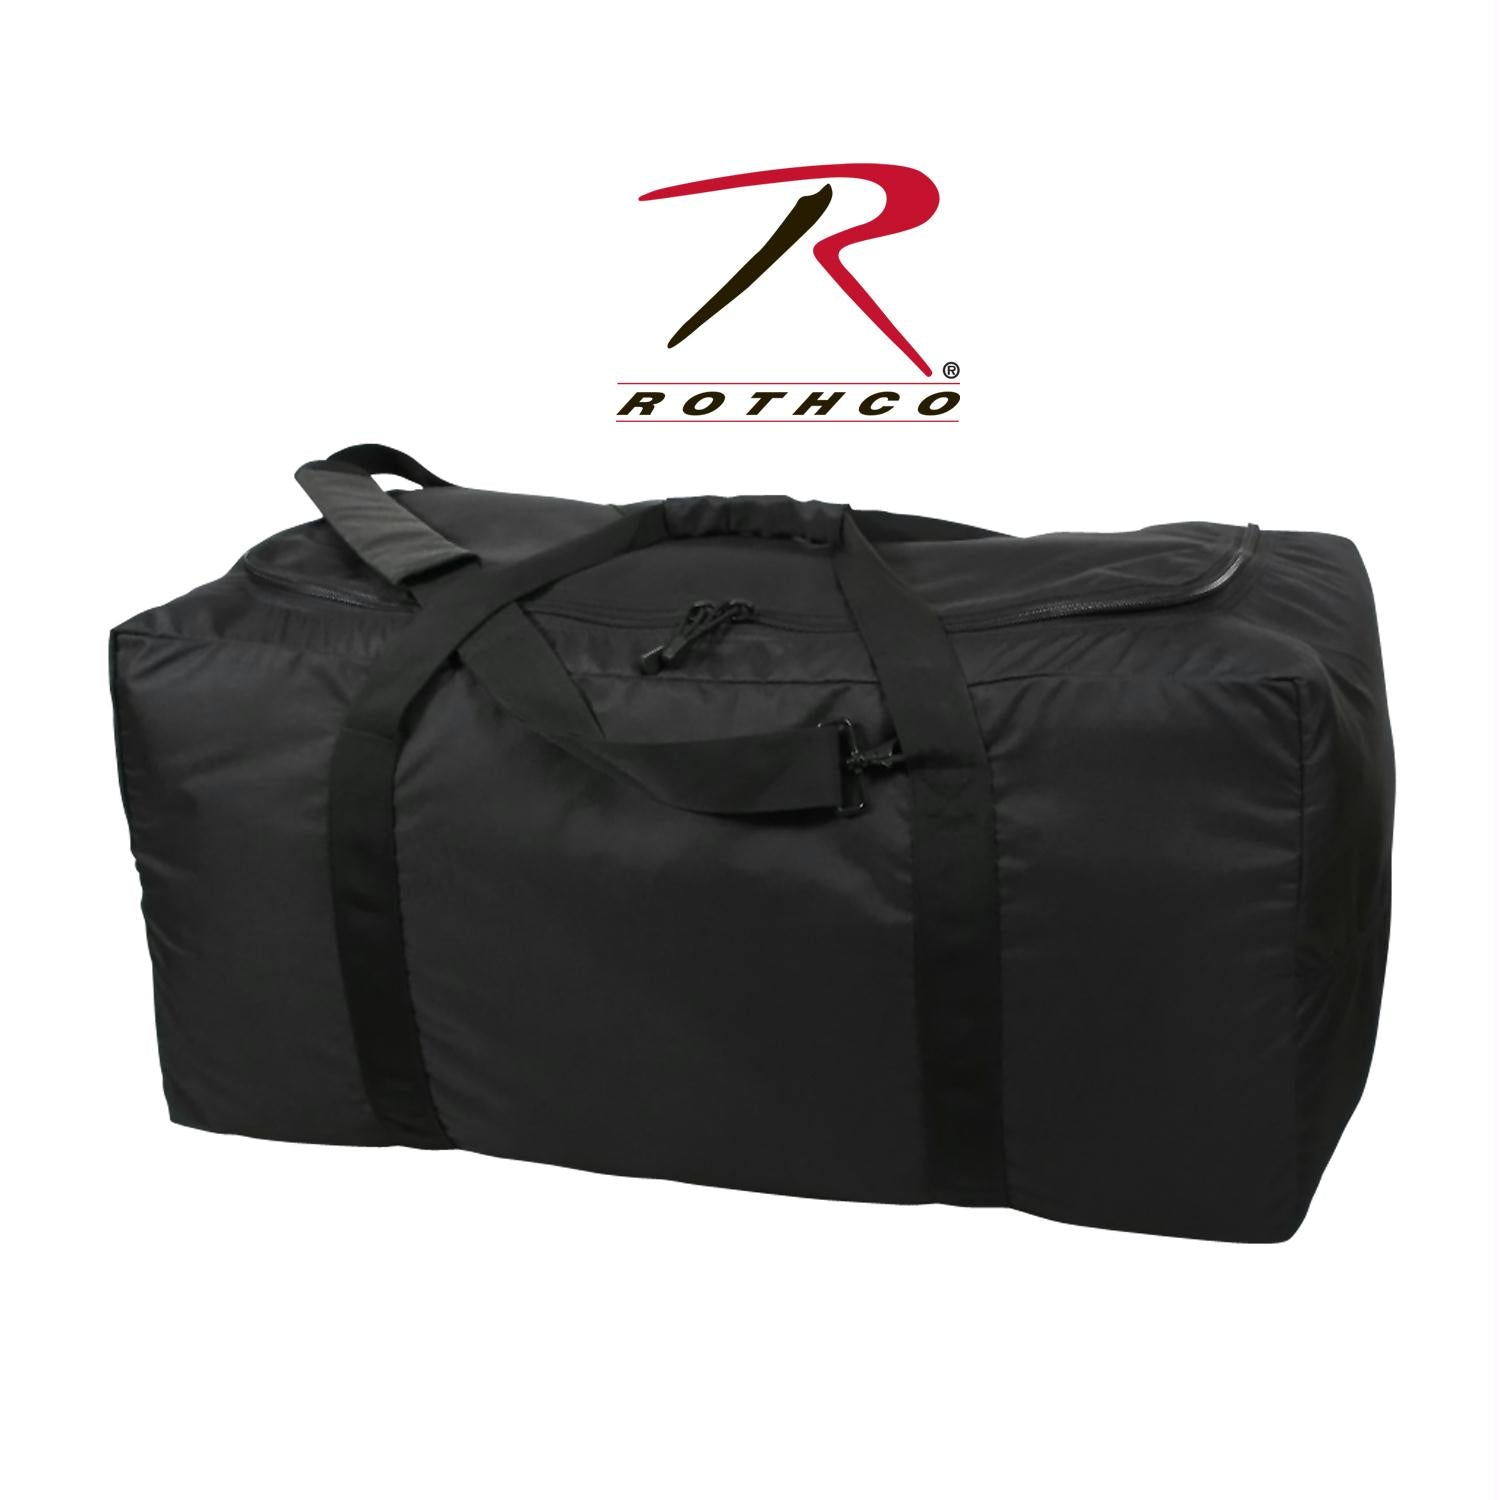 Rothco Full Access Gear Bag - Black